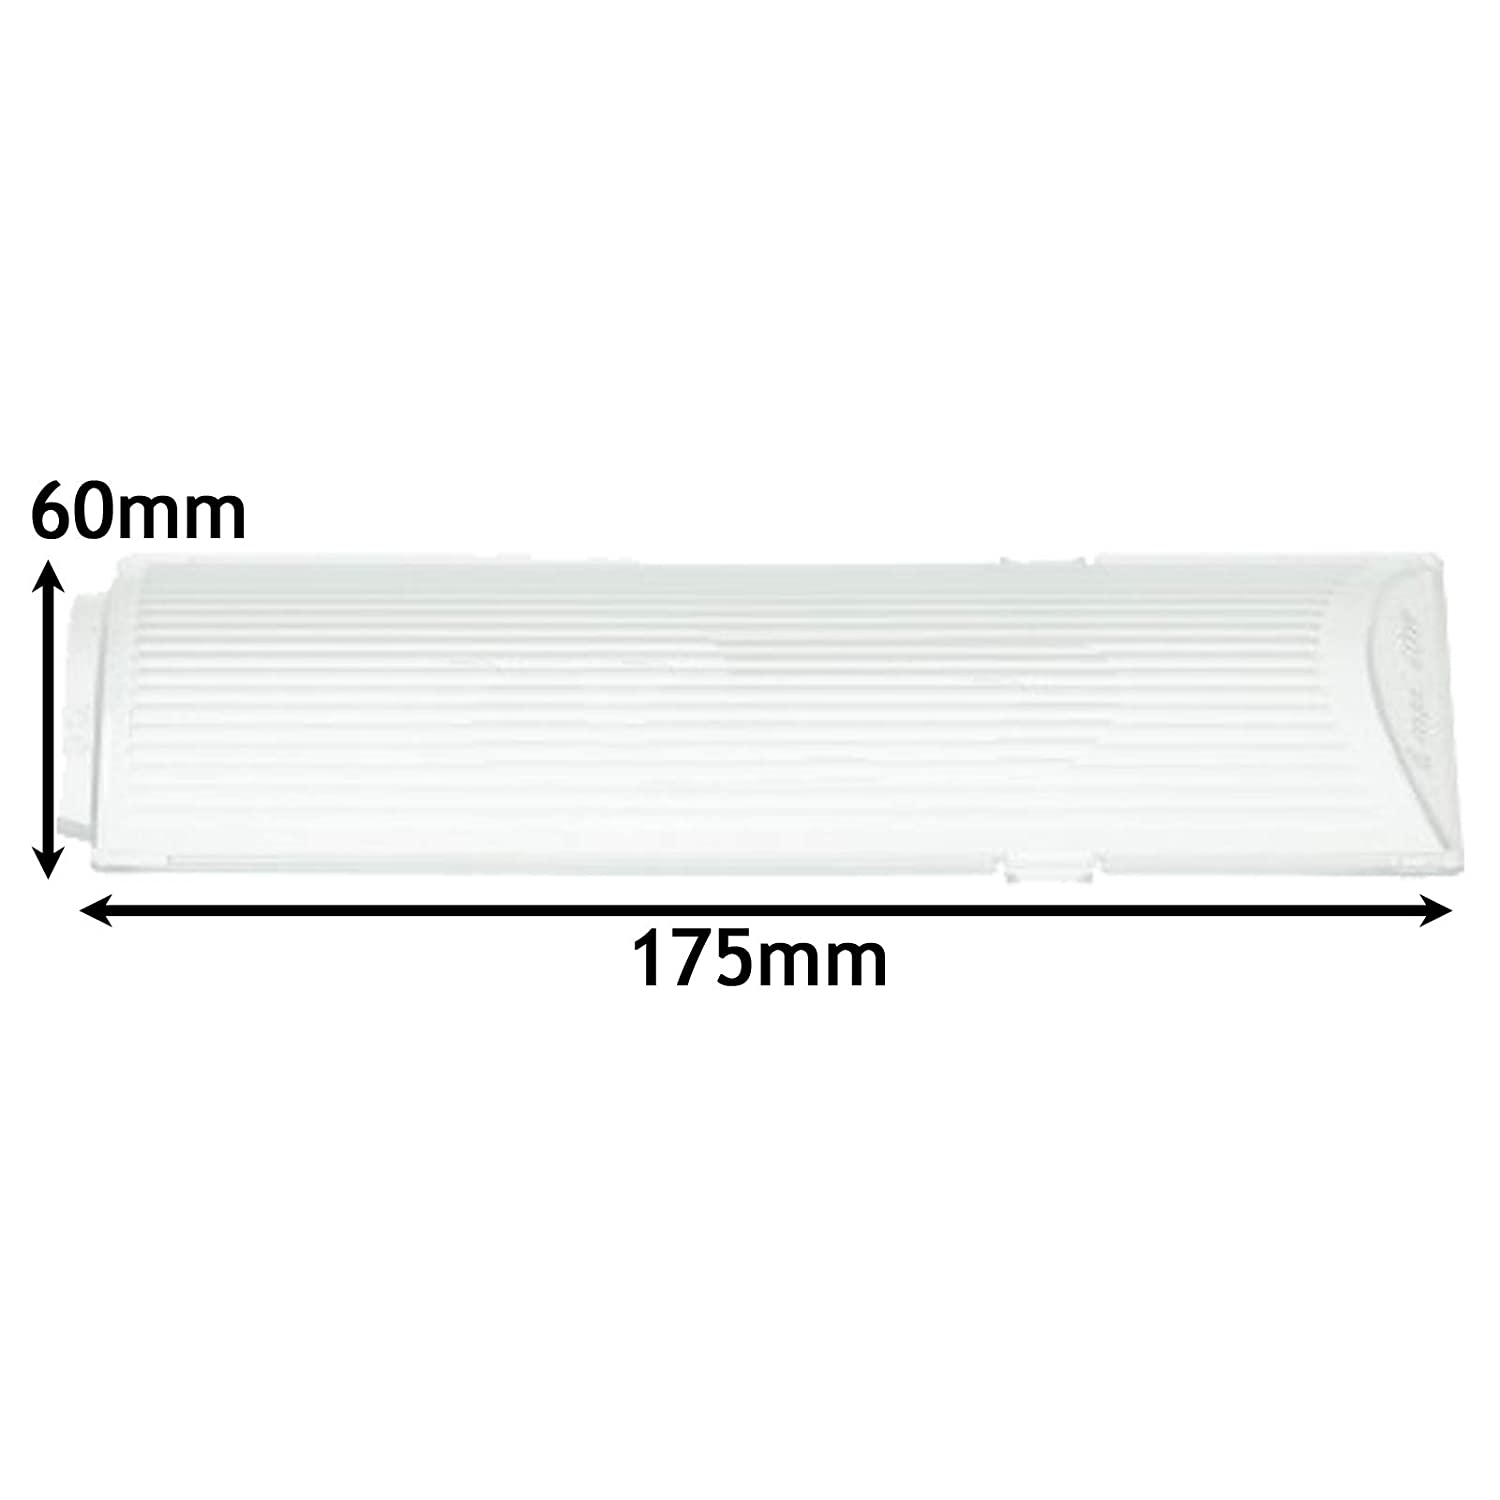 SPARES2GO Lamp Diffuser Cover for Neff Cooker Hood//Extractor Vent Fan 175 x 60mm